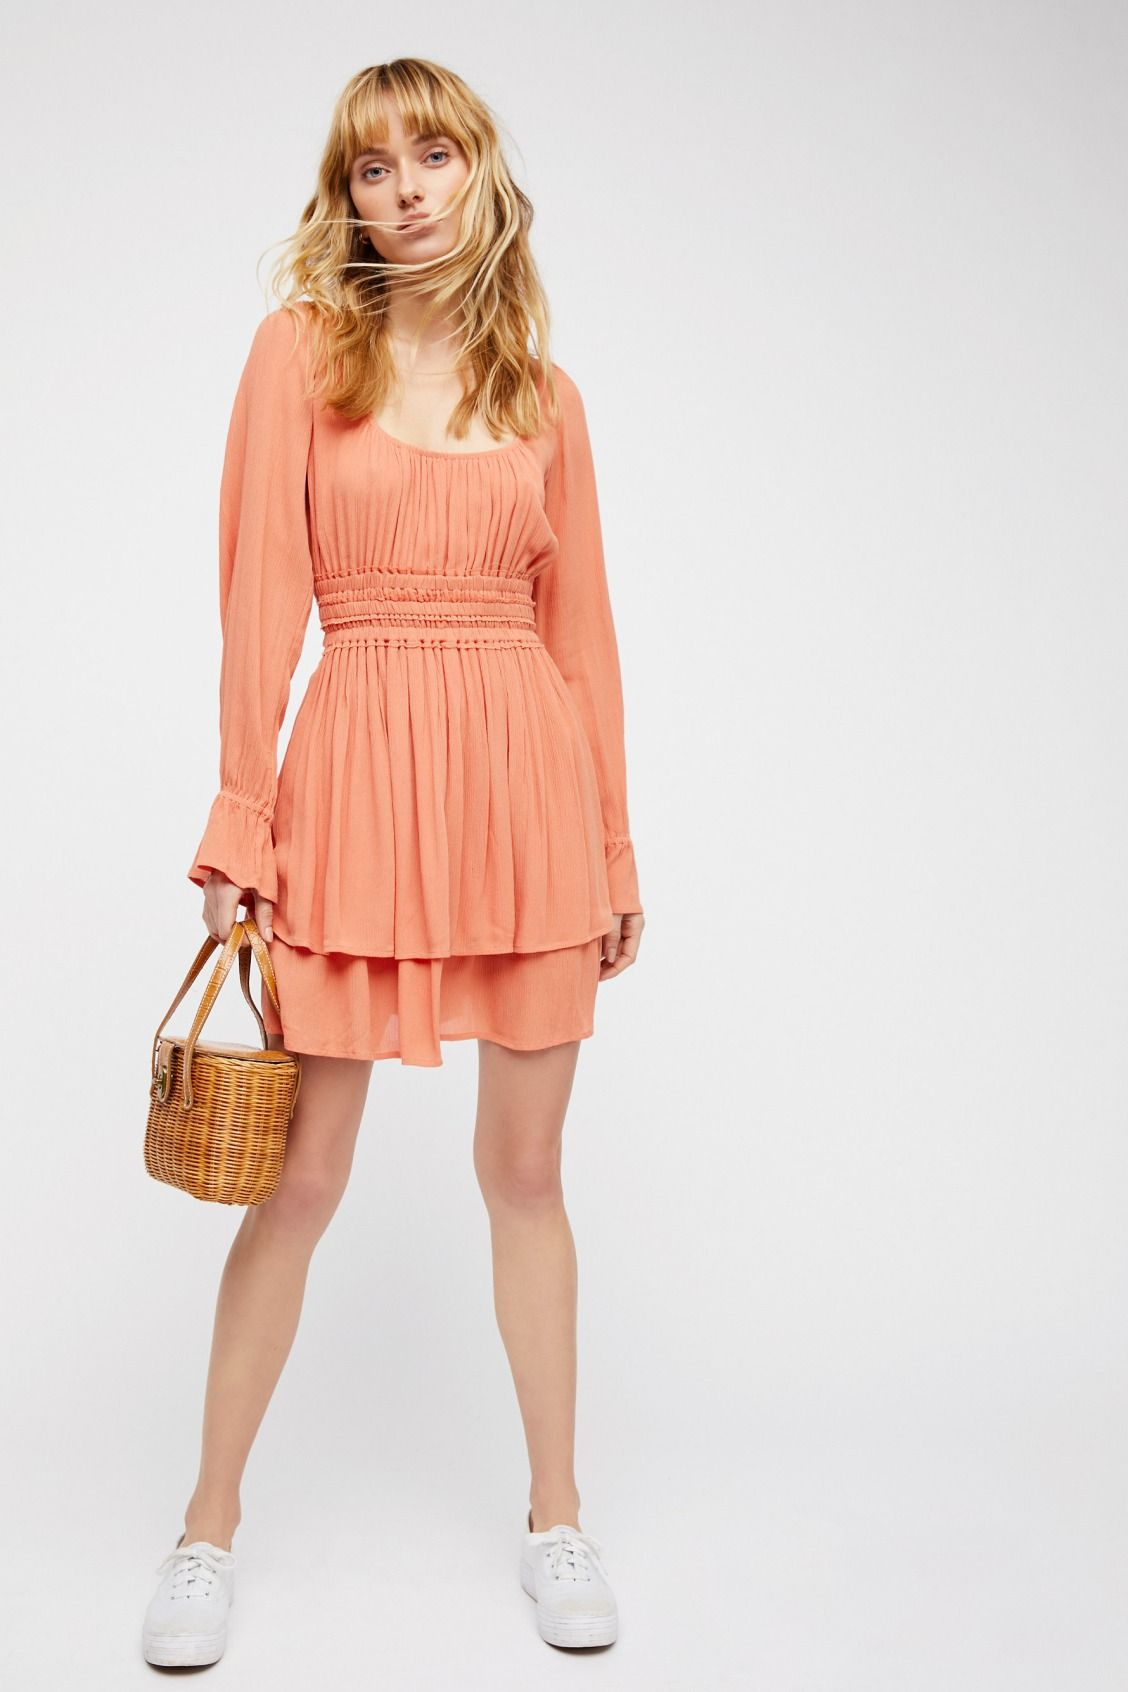 b9ab77fe51a Endless Summer Canyon Rose Much Ado Mini Dress at Free People Clothing  Boutique